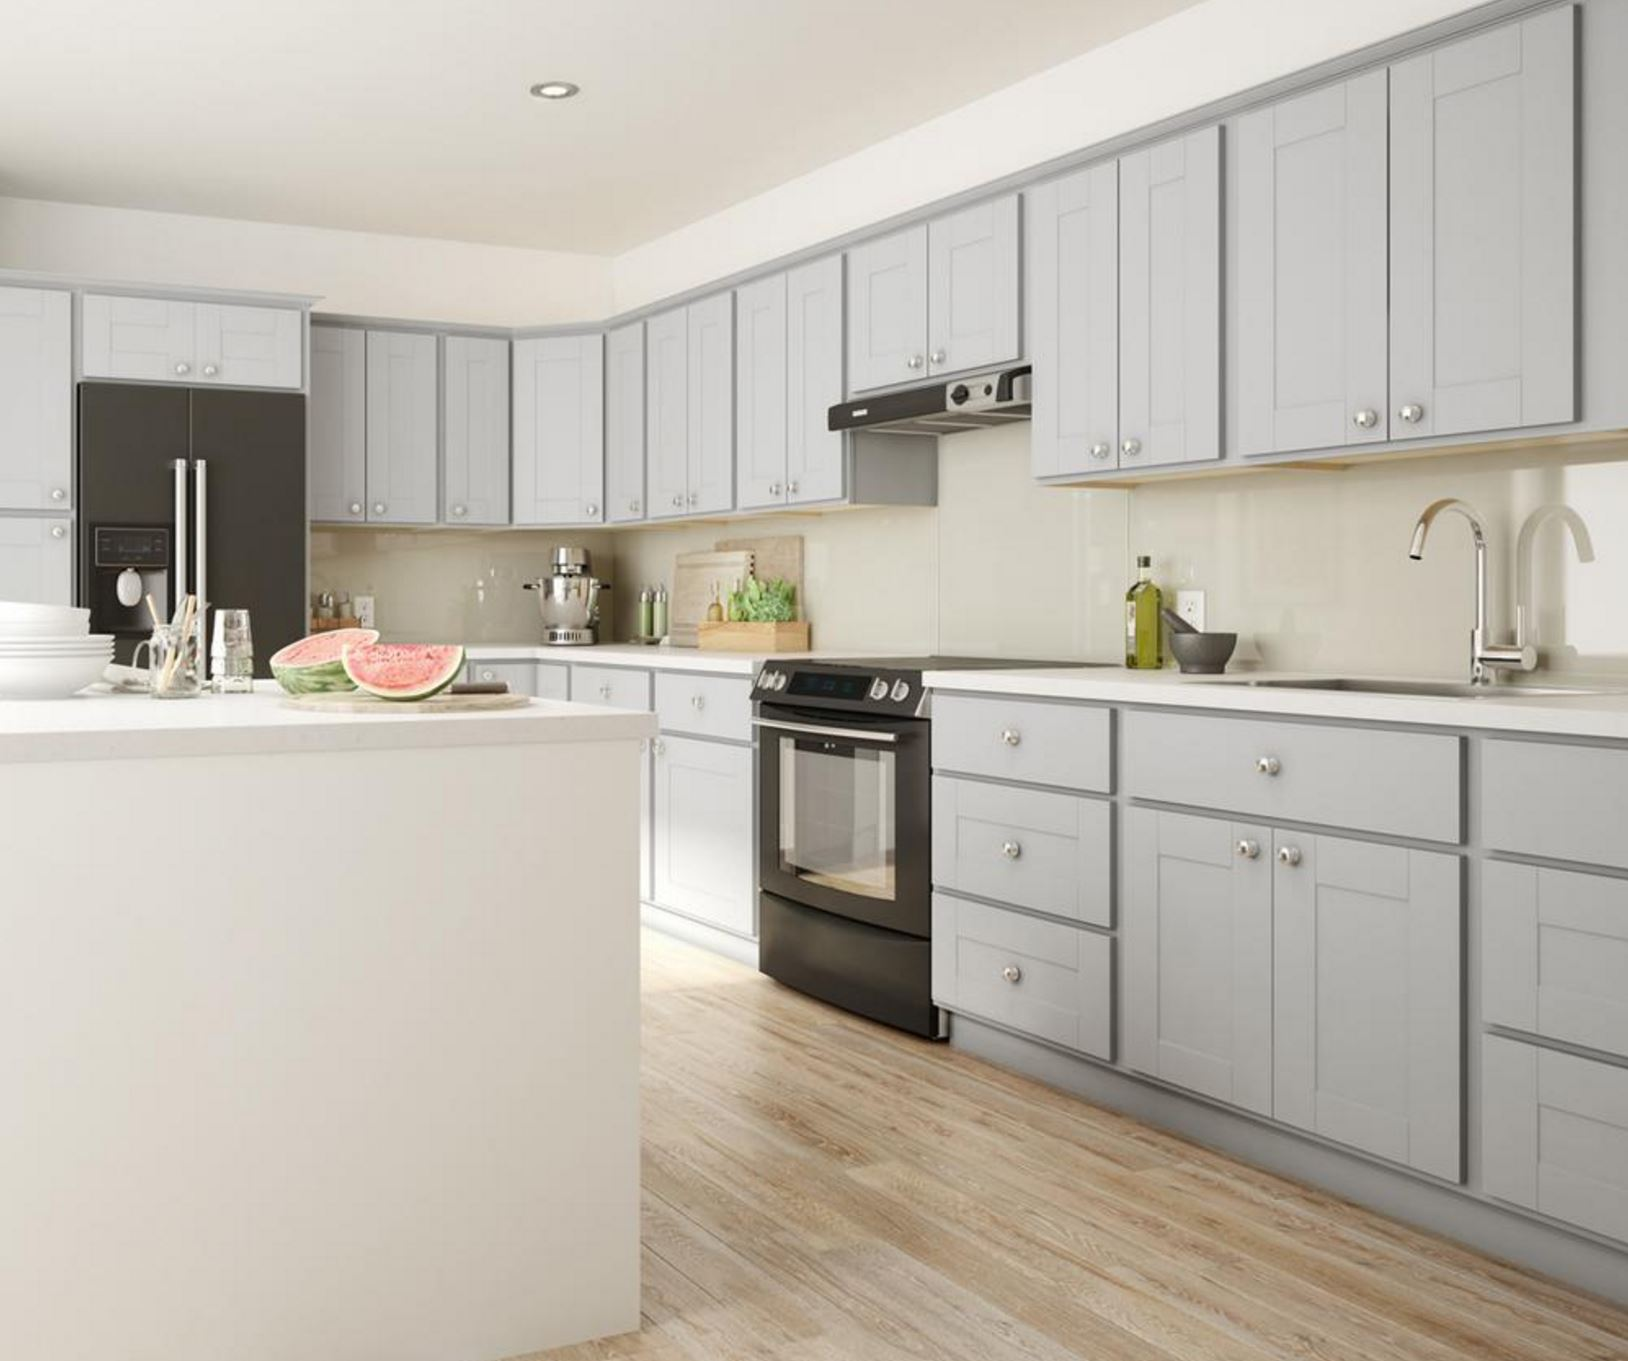 Grey Kitchen Cabinets What Colour Walls Princeton Wall Cabinets In Warm Grey Kitchen The Home Depot